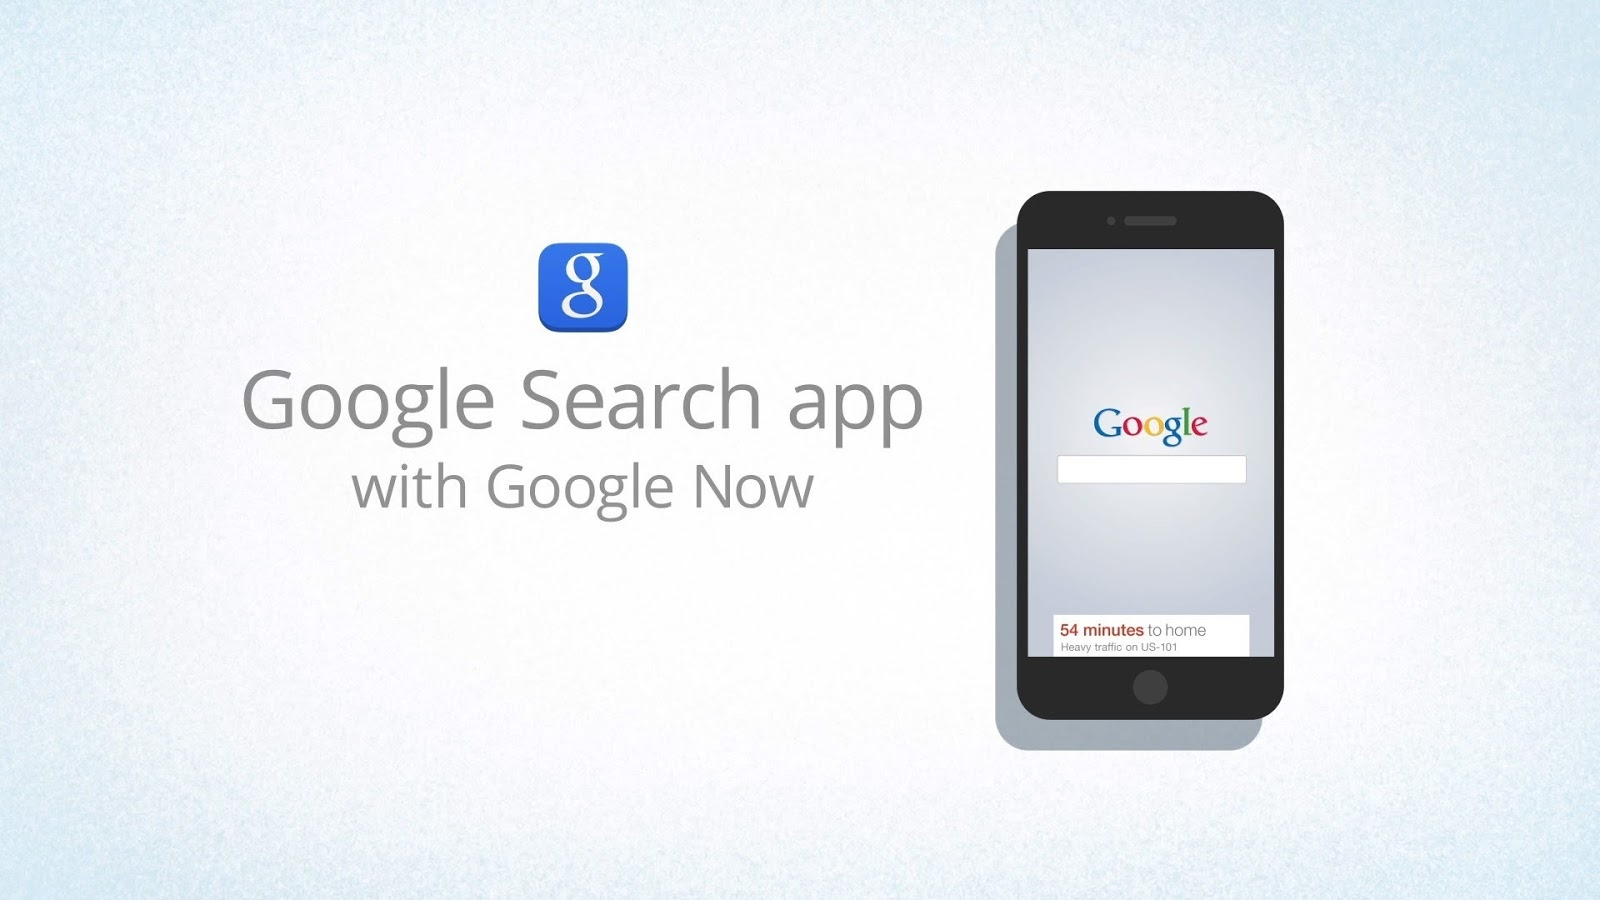 Google App Beta V6 Apk To Download For Android Mobiles